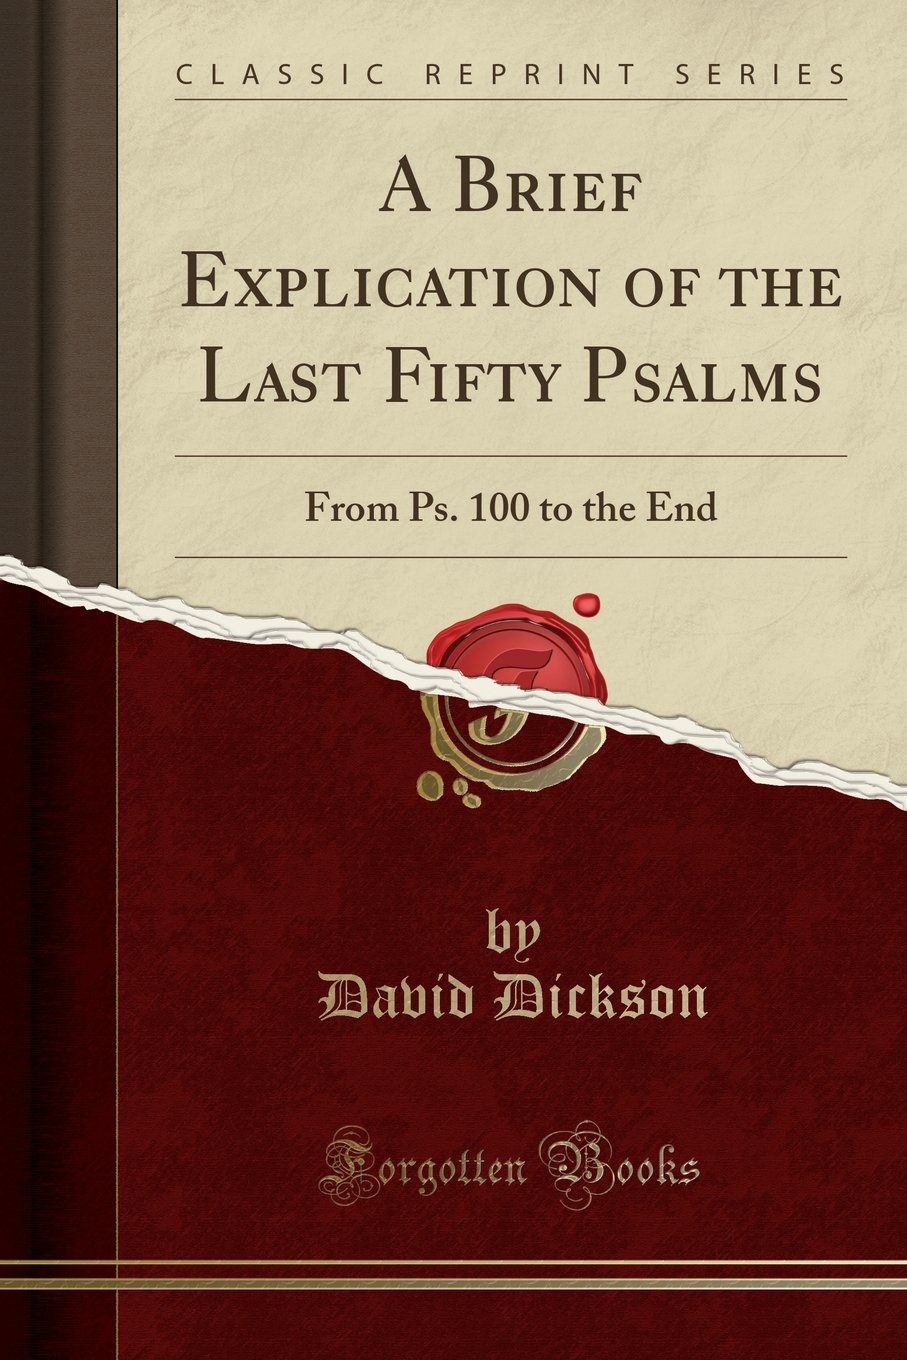 A Brief Explication of the Last Fifty Psalms: From Ps. 100 to the End (Classic Reprint) pdf